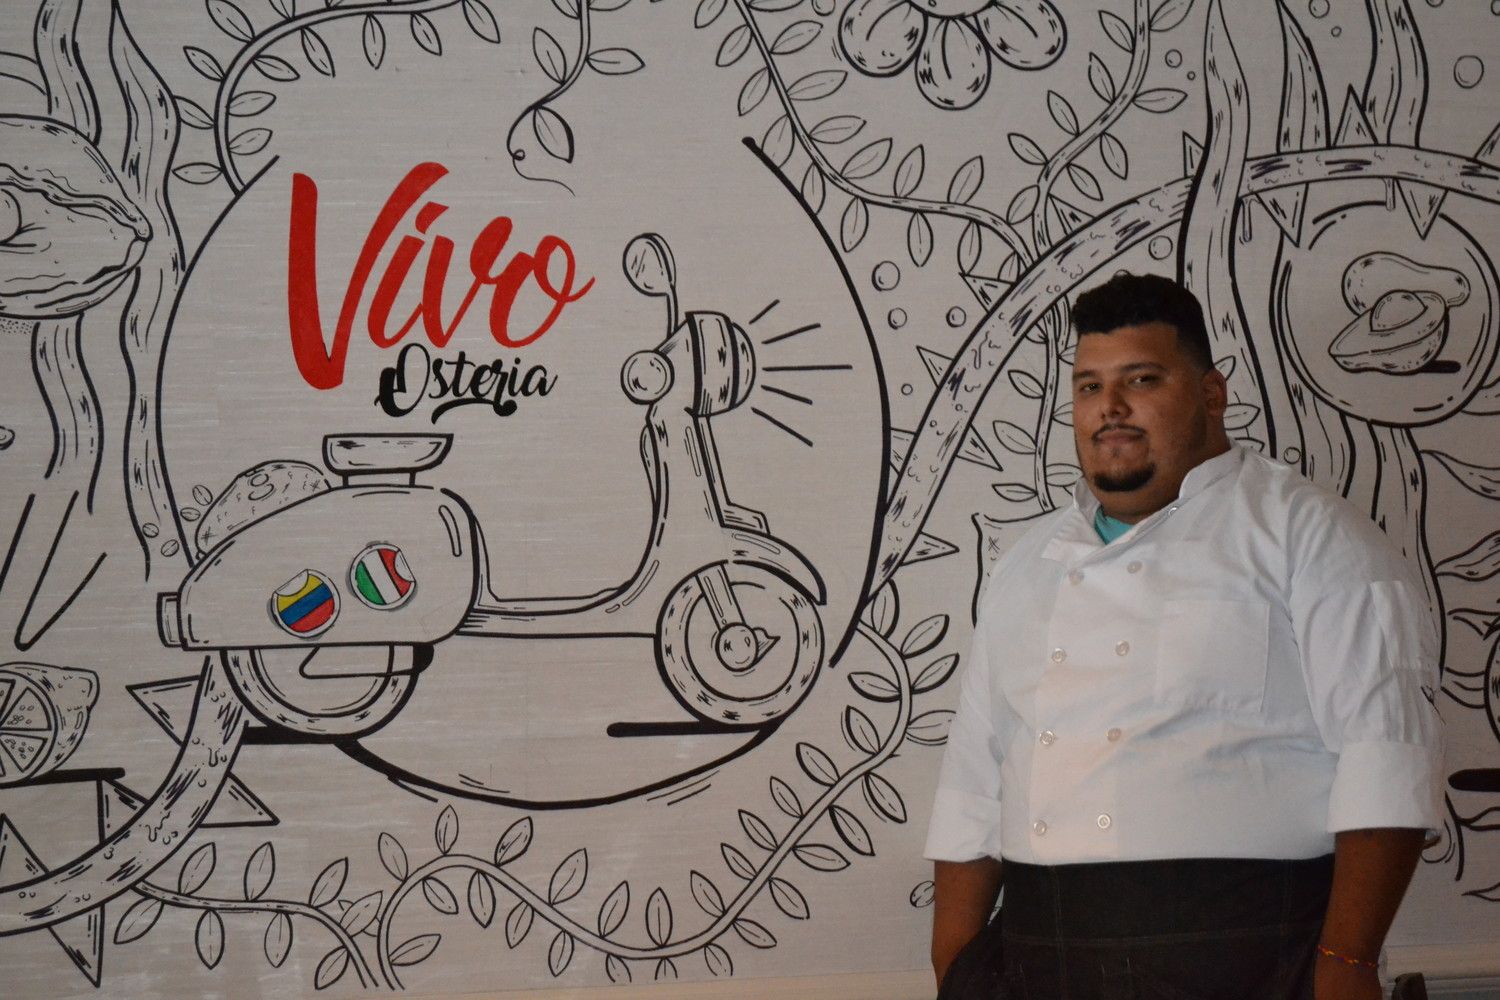 Chef Manny Benitez said that the mural in the restaurant, like the food it serves, mixes Italian and Latin American influences.